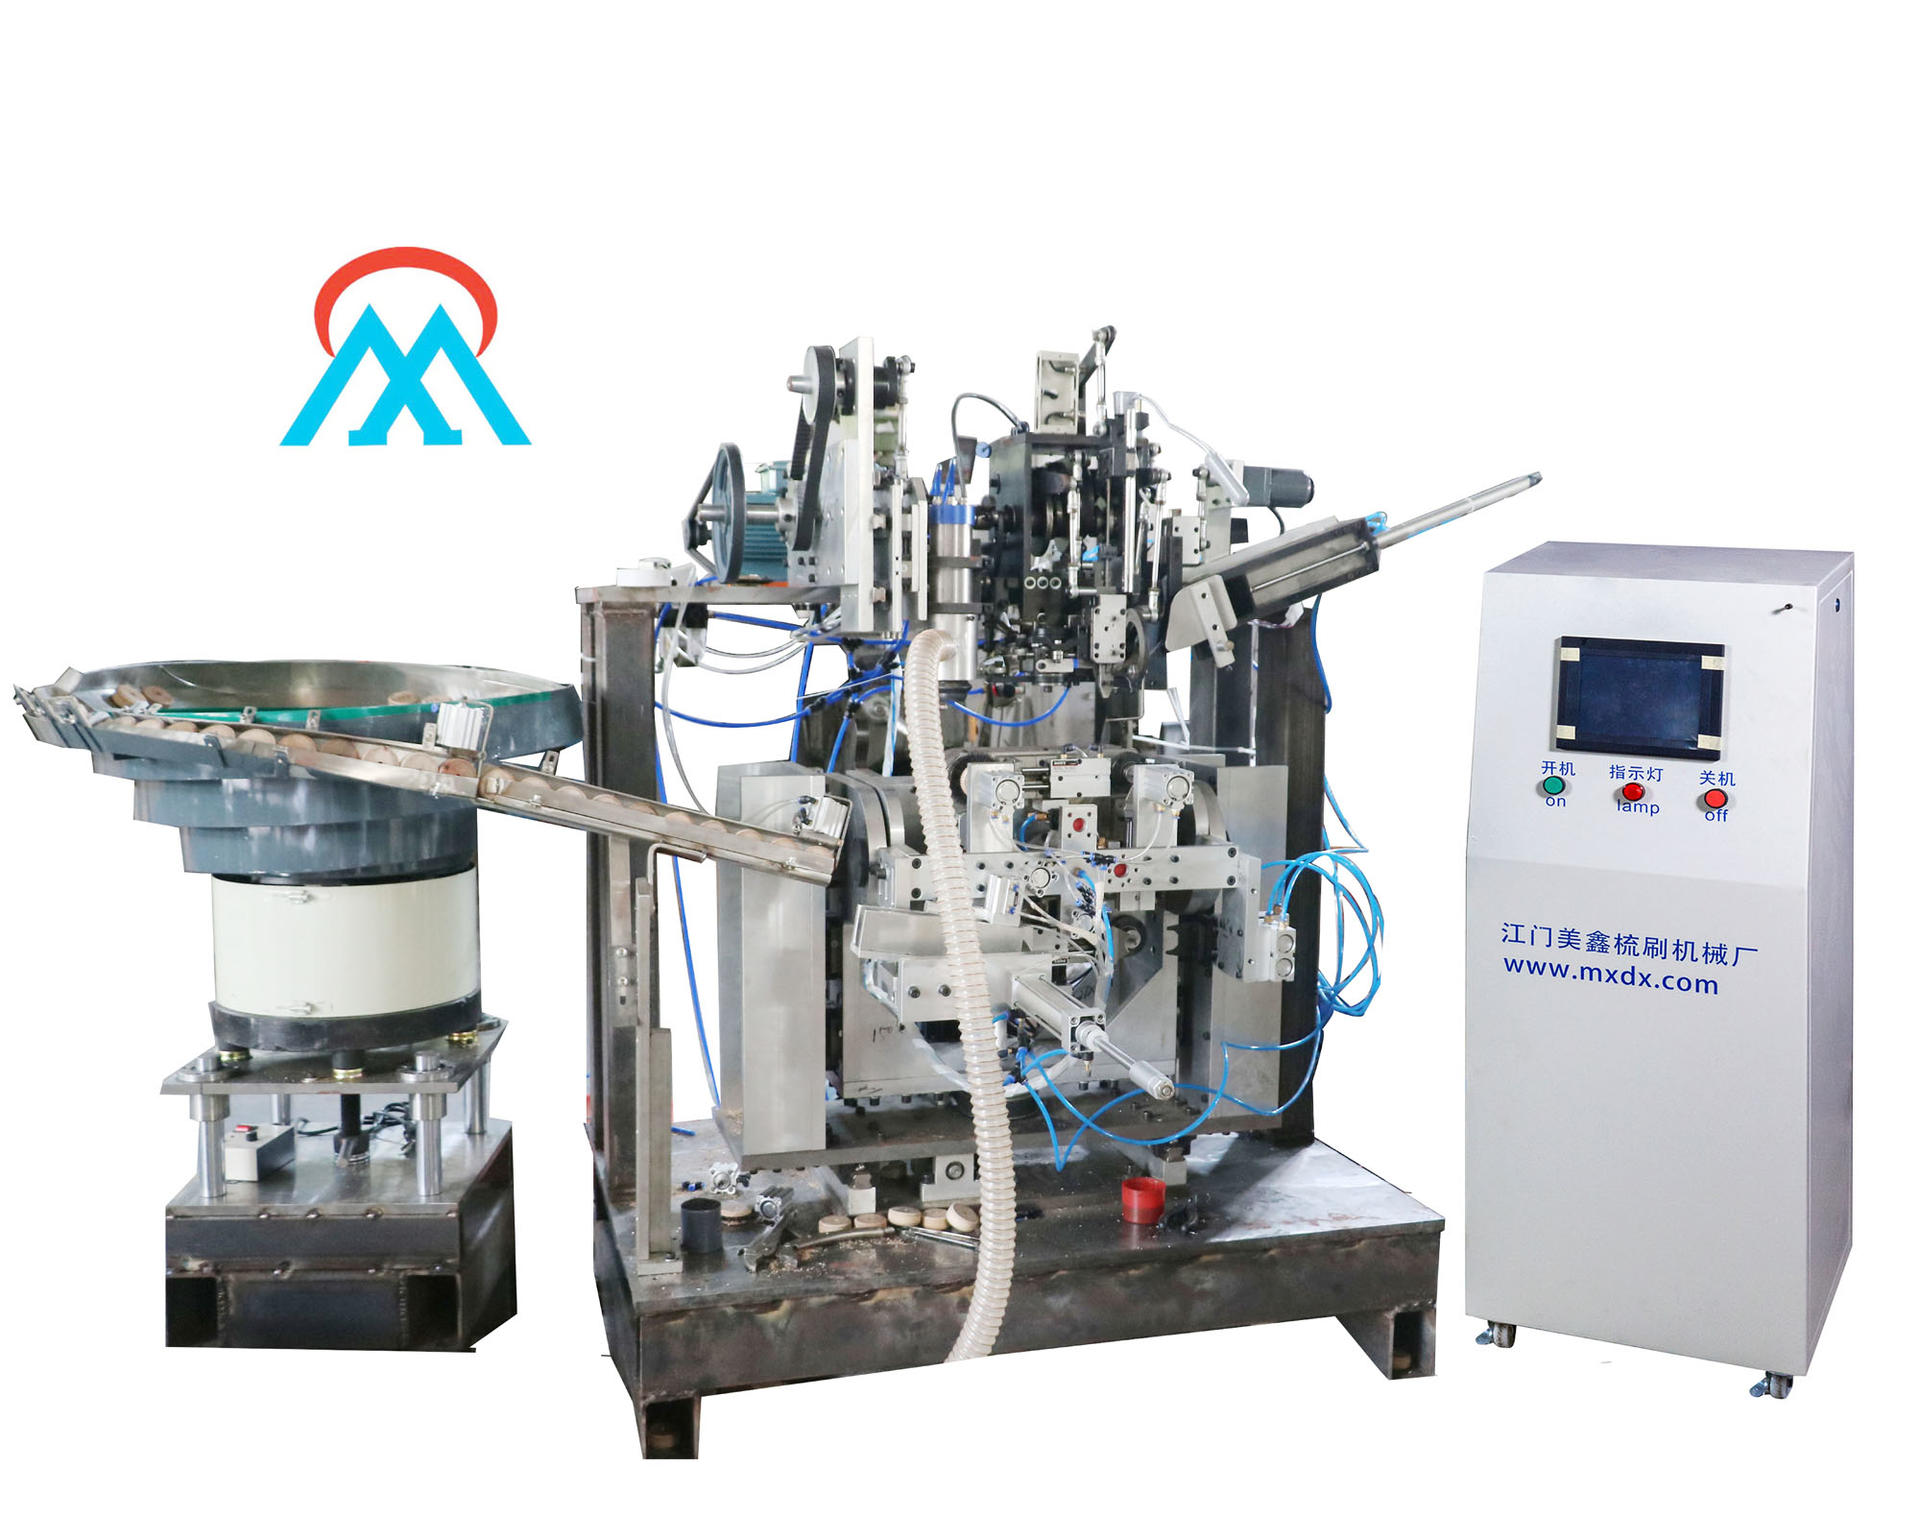 Polishing Brush Machine